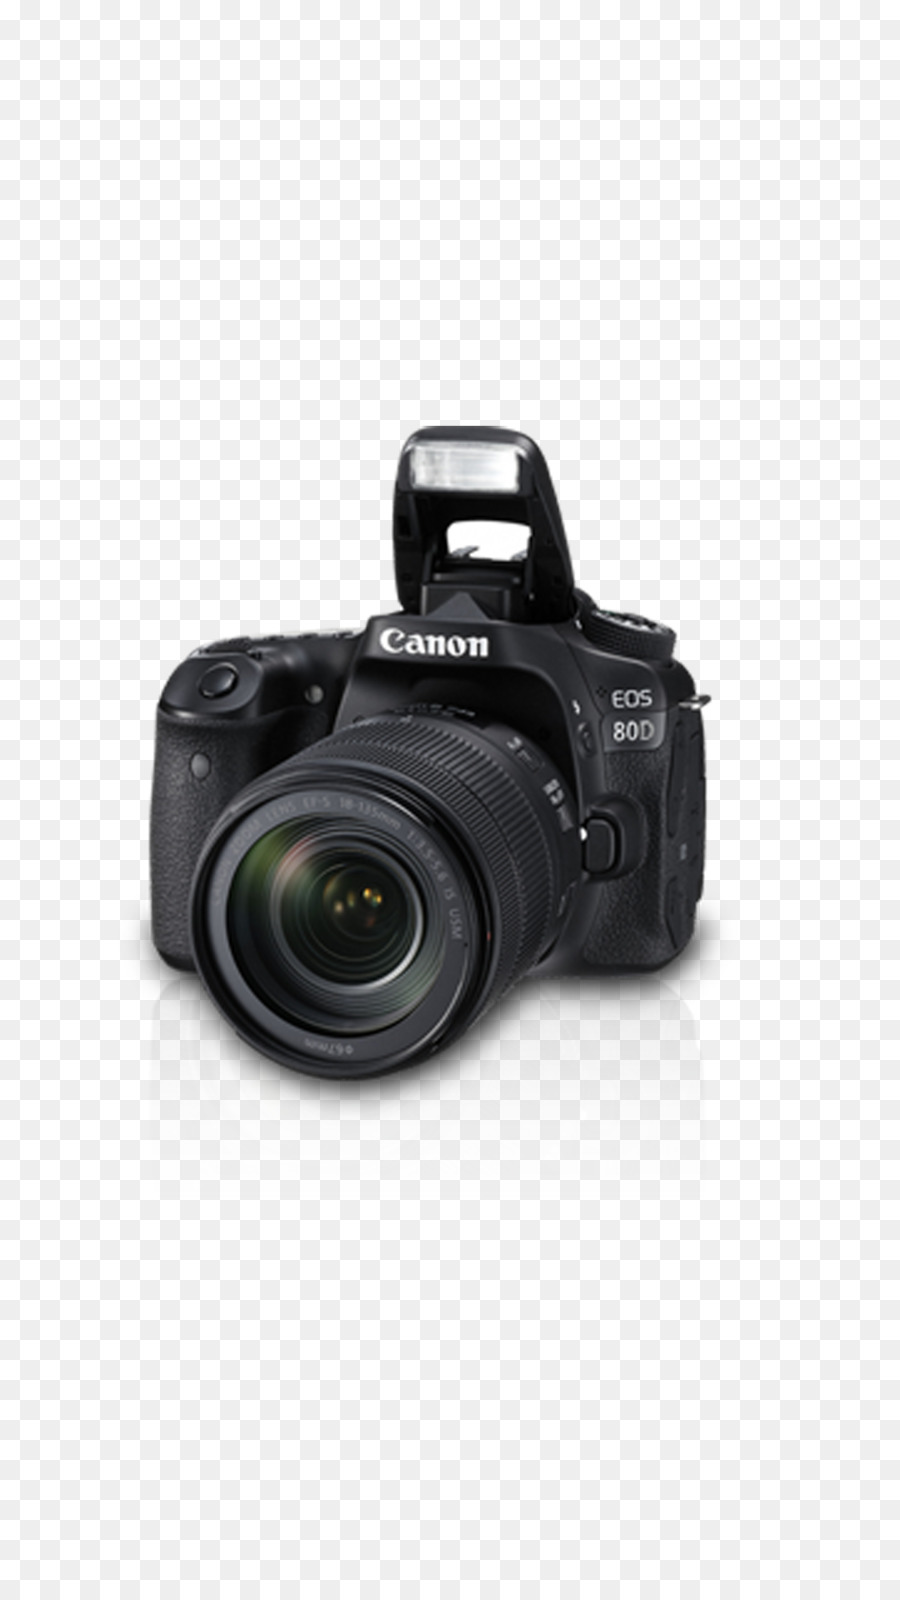 Canon Camera png download - 1080*1920 - Free Transparent